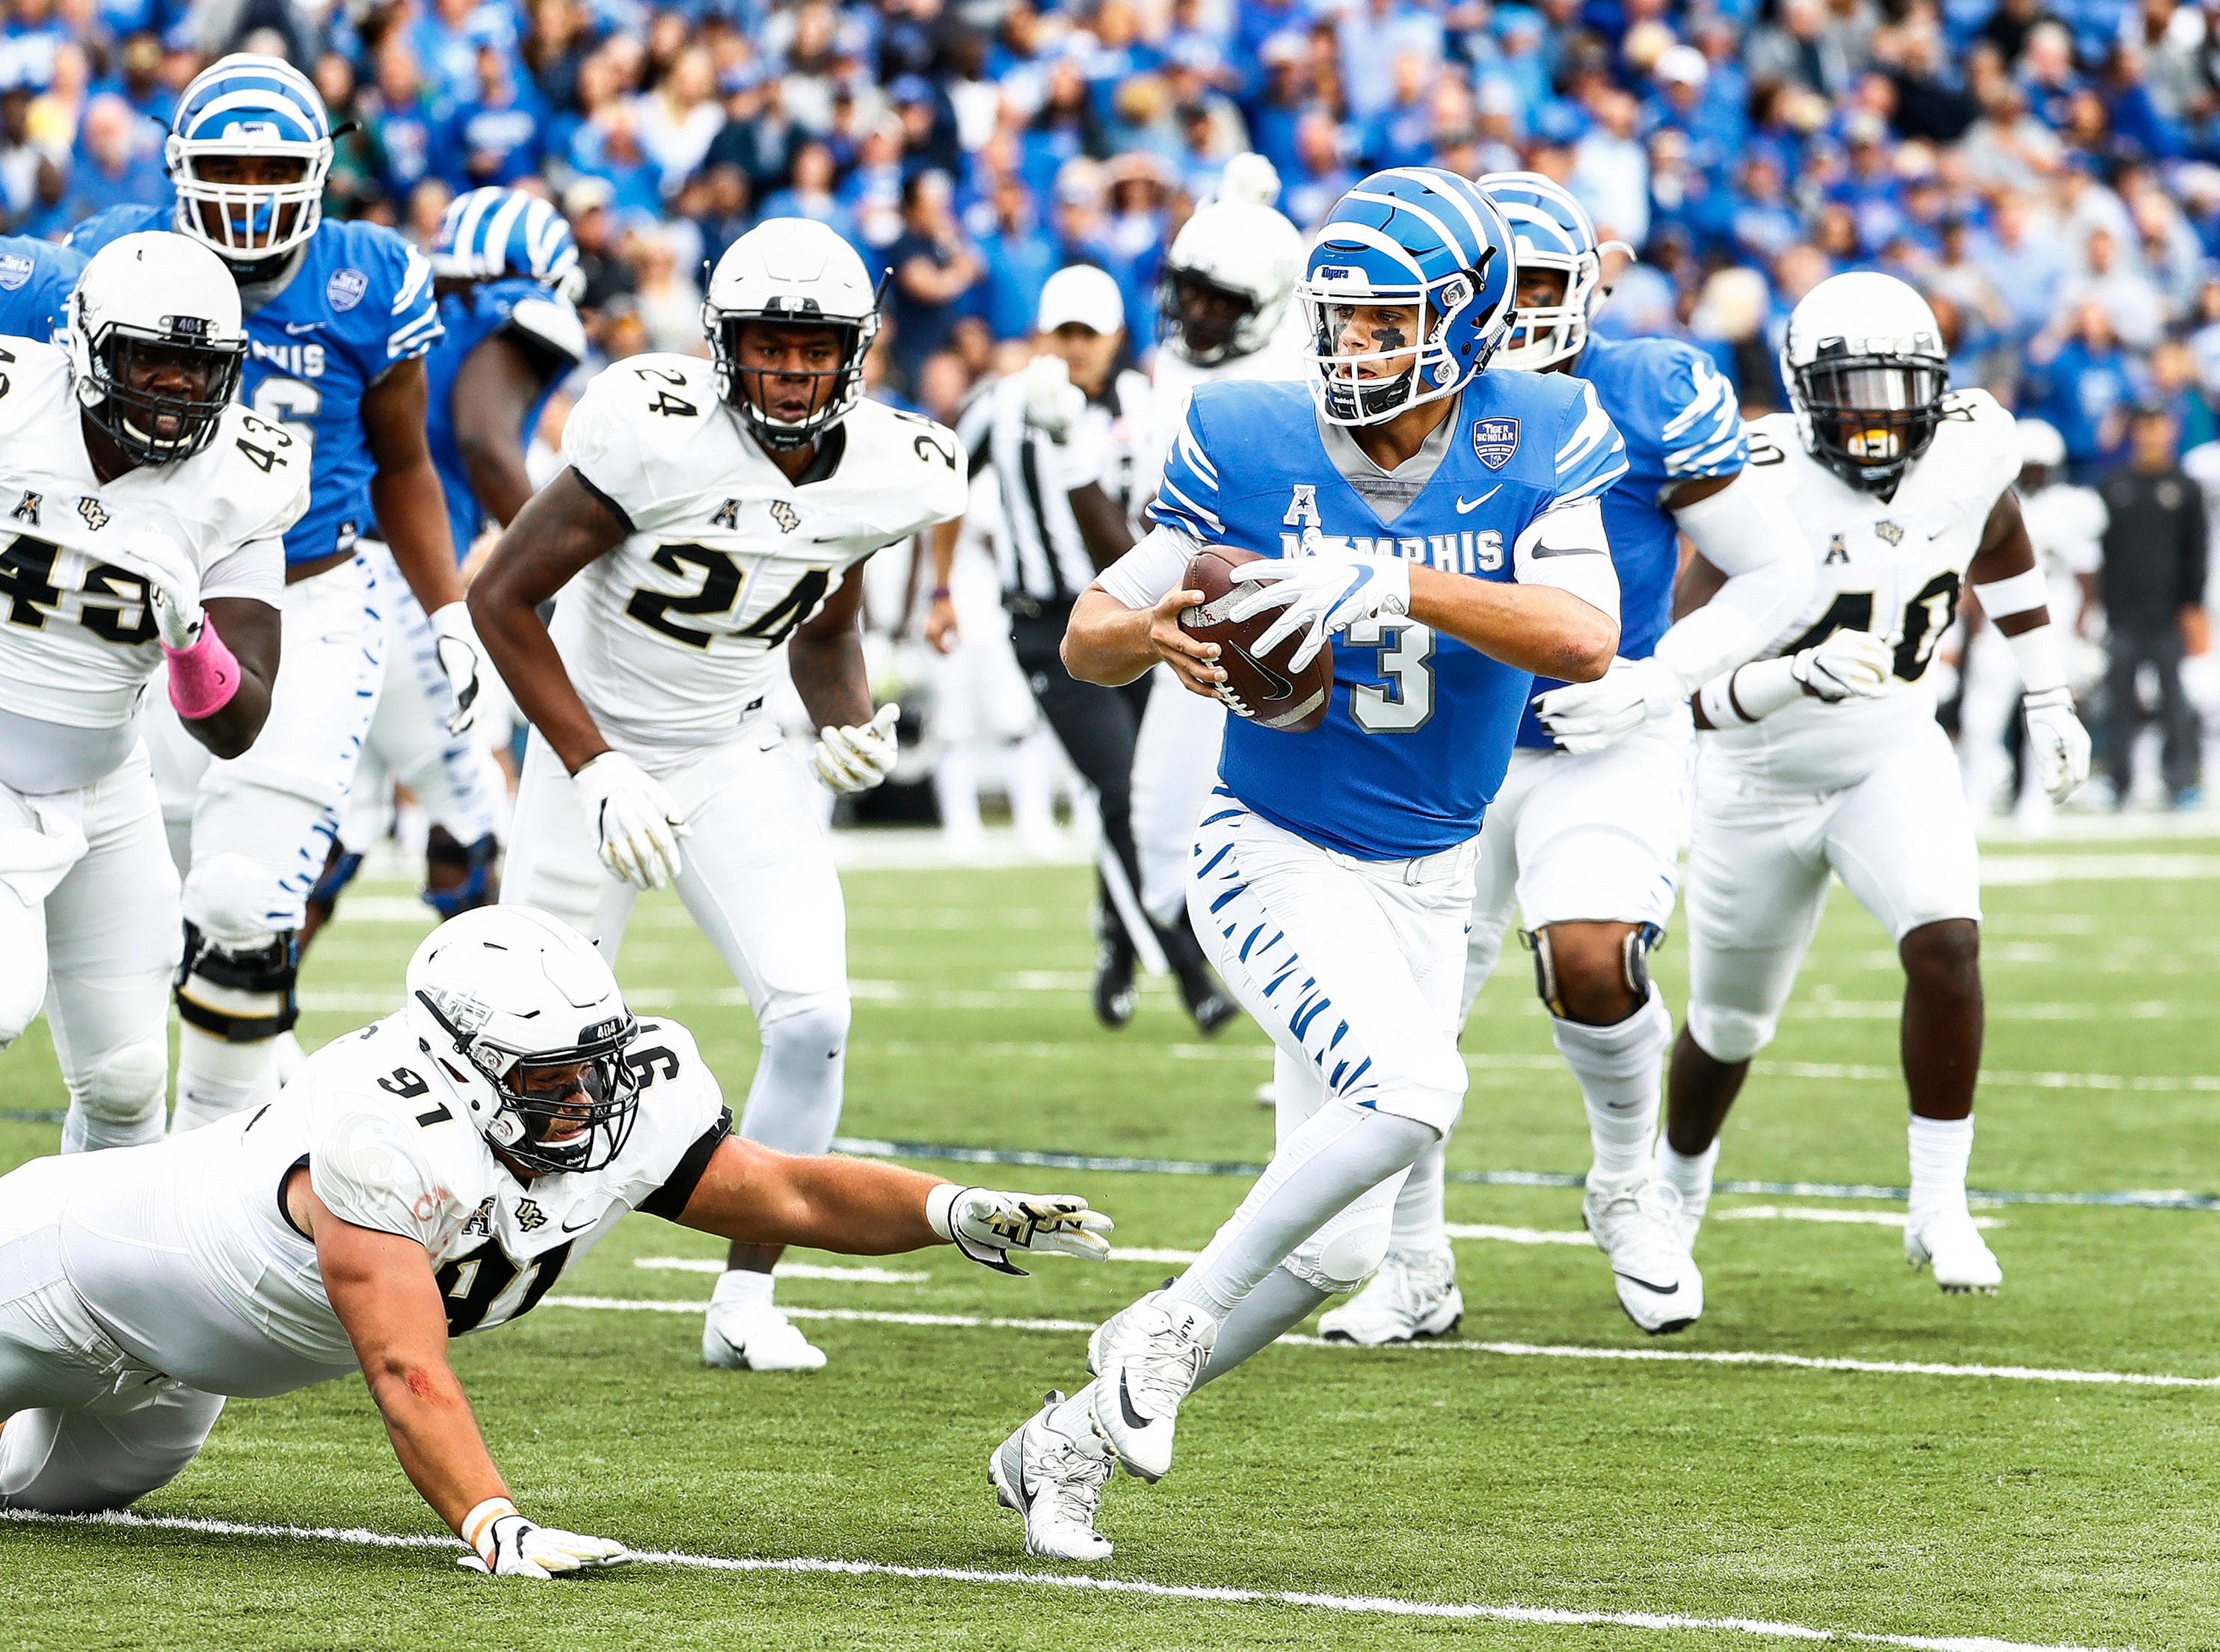 Memphis quarterback Brady White (right) scrambles past the Central Florida defense for a touchdown during action in Memphis, Tenn., Saturday, October 13, 2018.